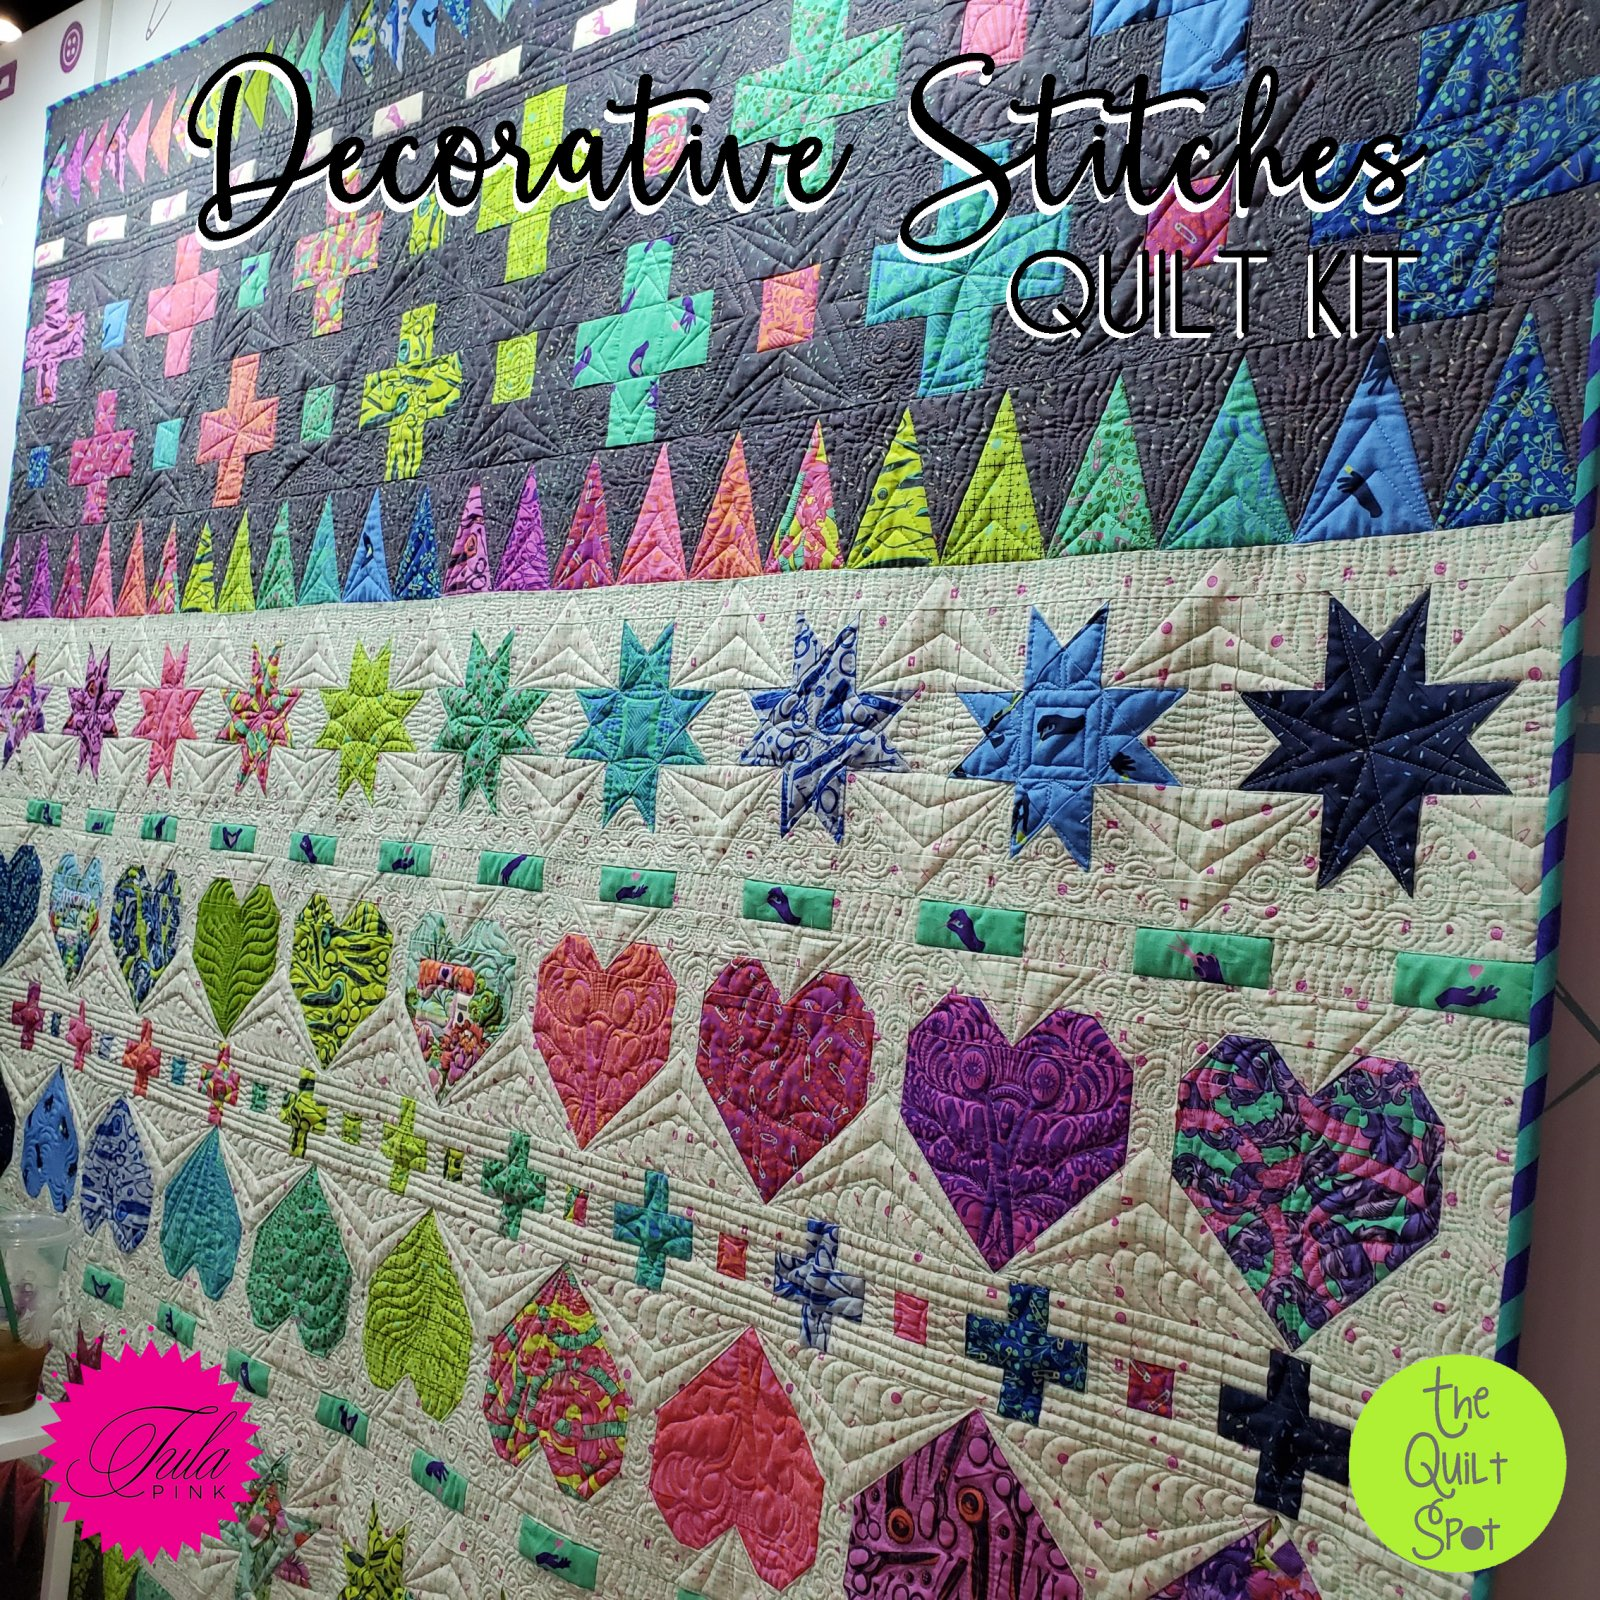 Decorative Stitches Quilt Kit - Featuring Tula Pink Homemade Fabric